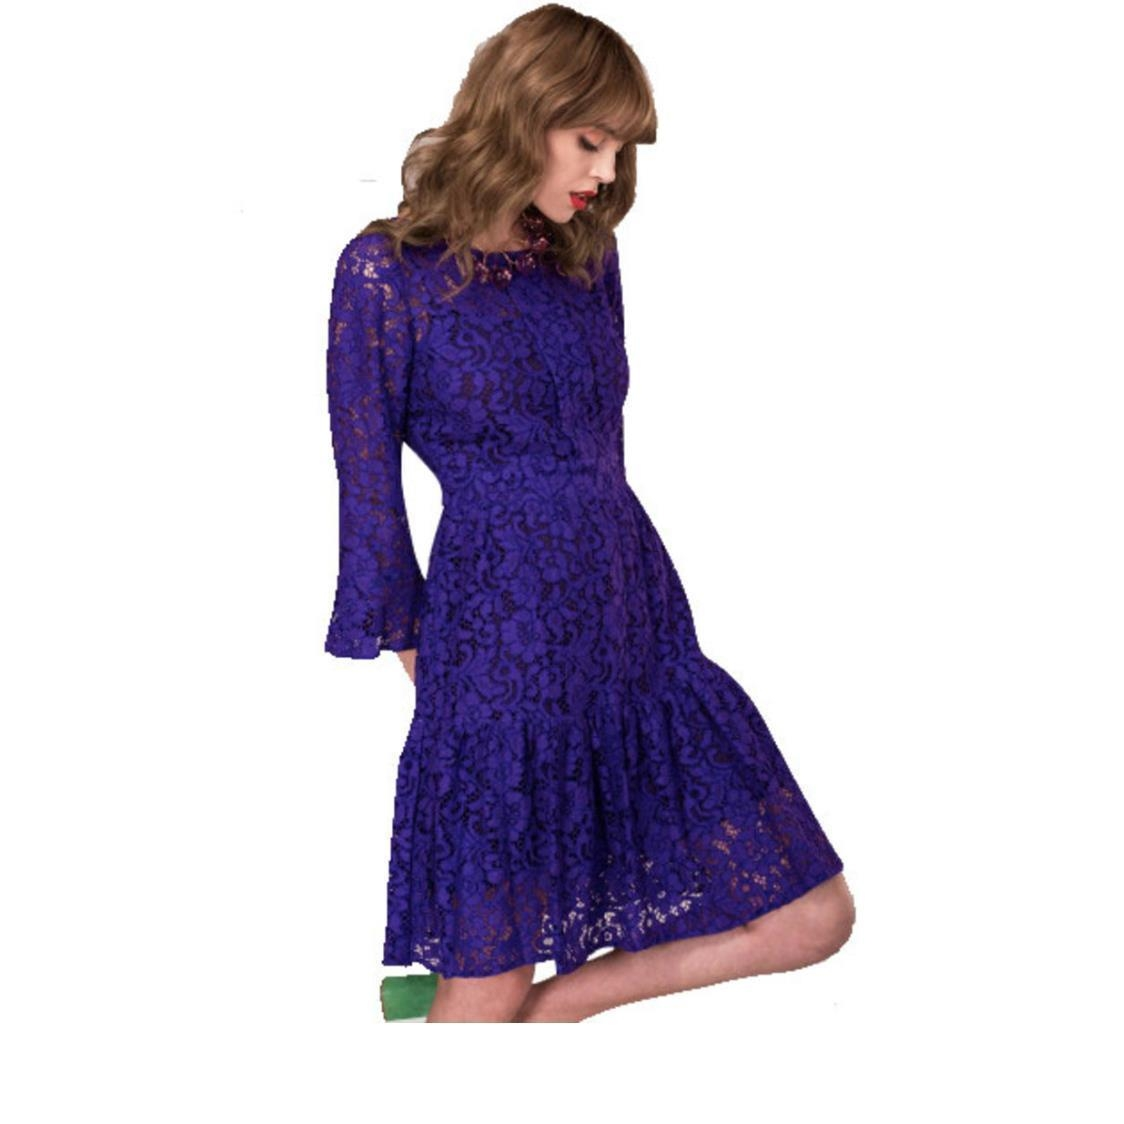 Lace Full Skirt Dress Purple